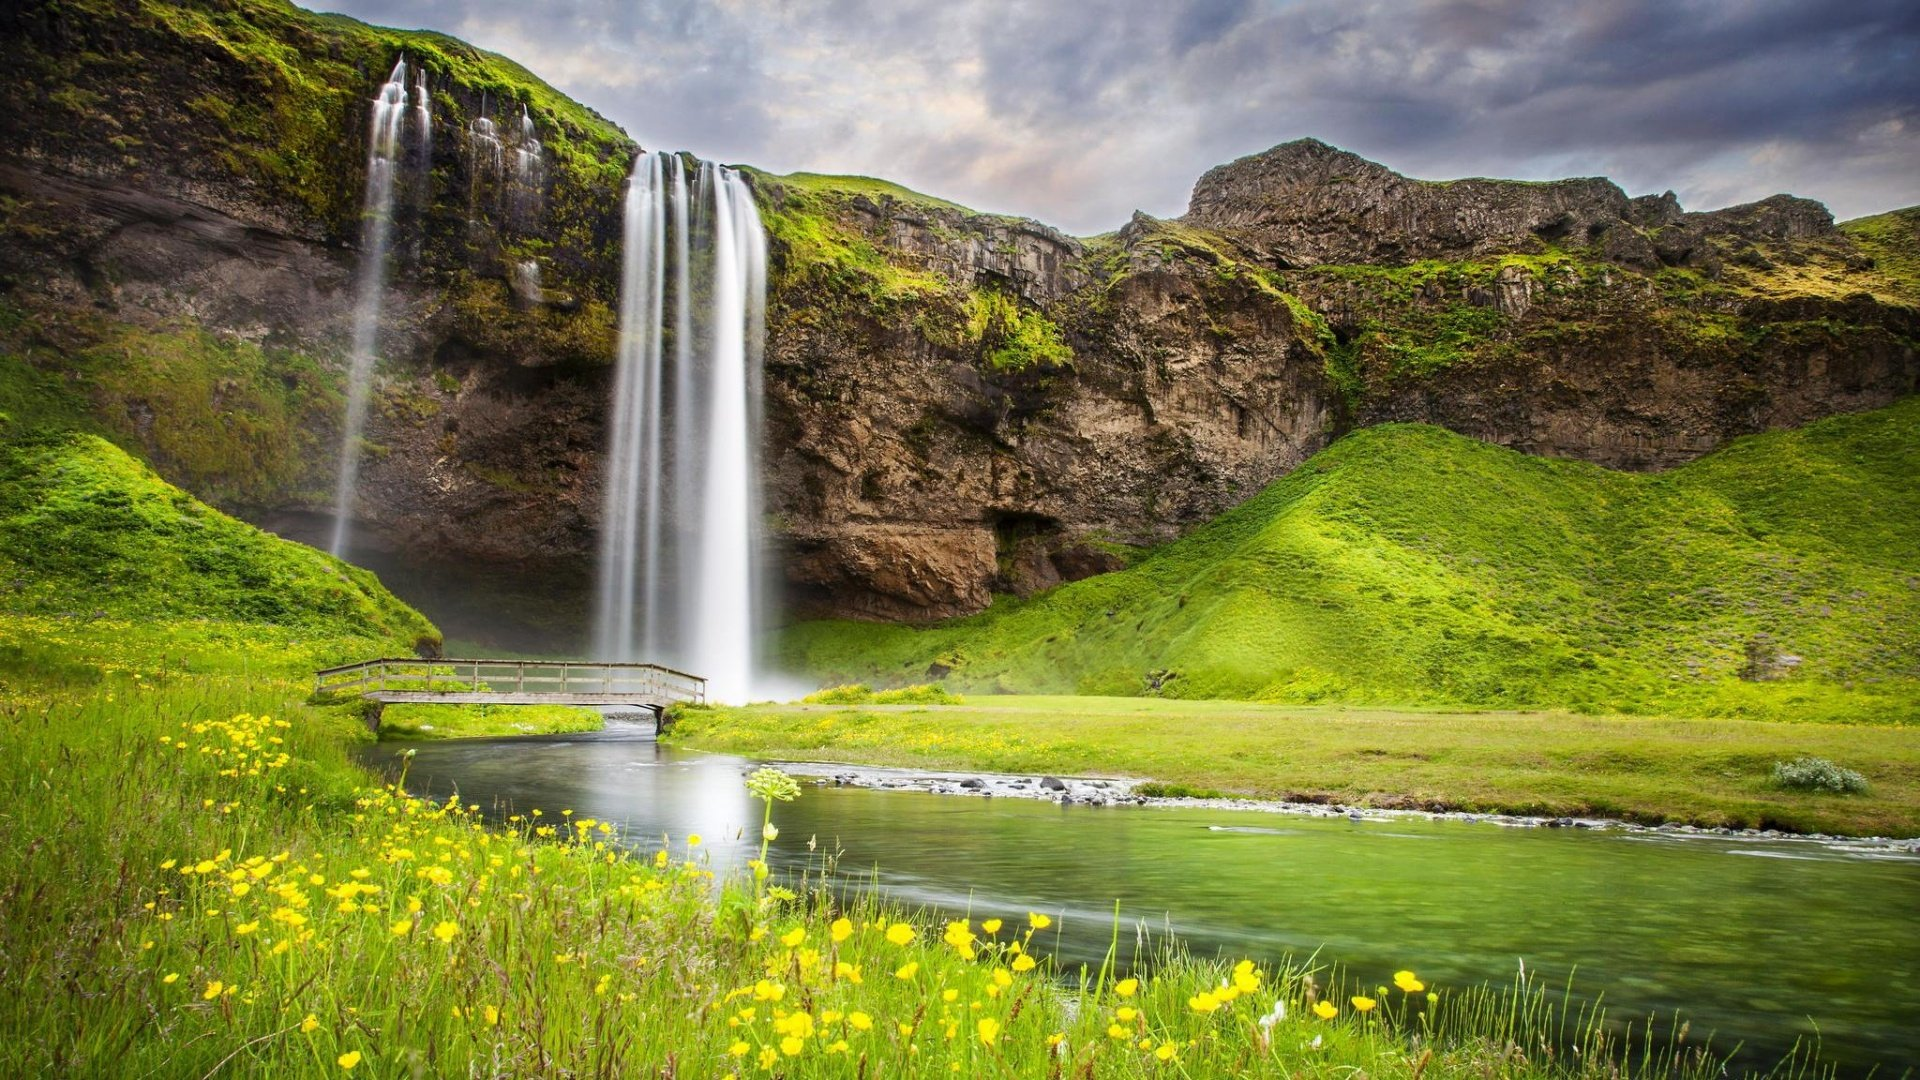 Waterfall River Summer Landscape 1920 x 1080 Download Close 1920x1080